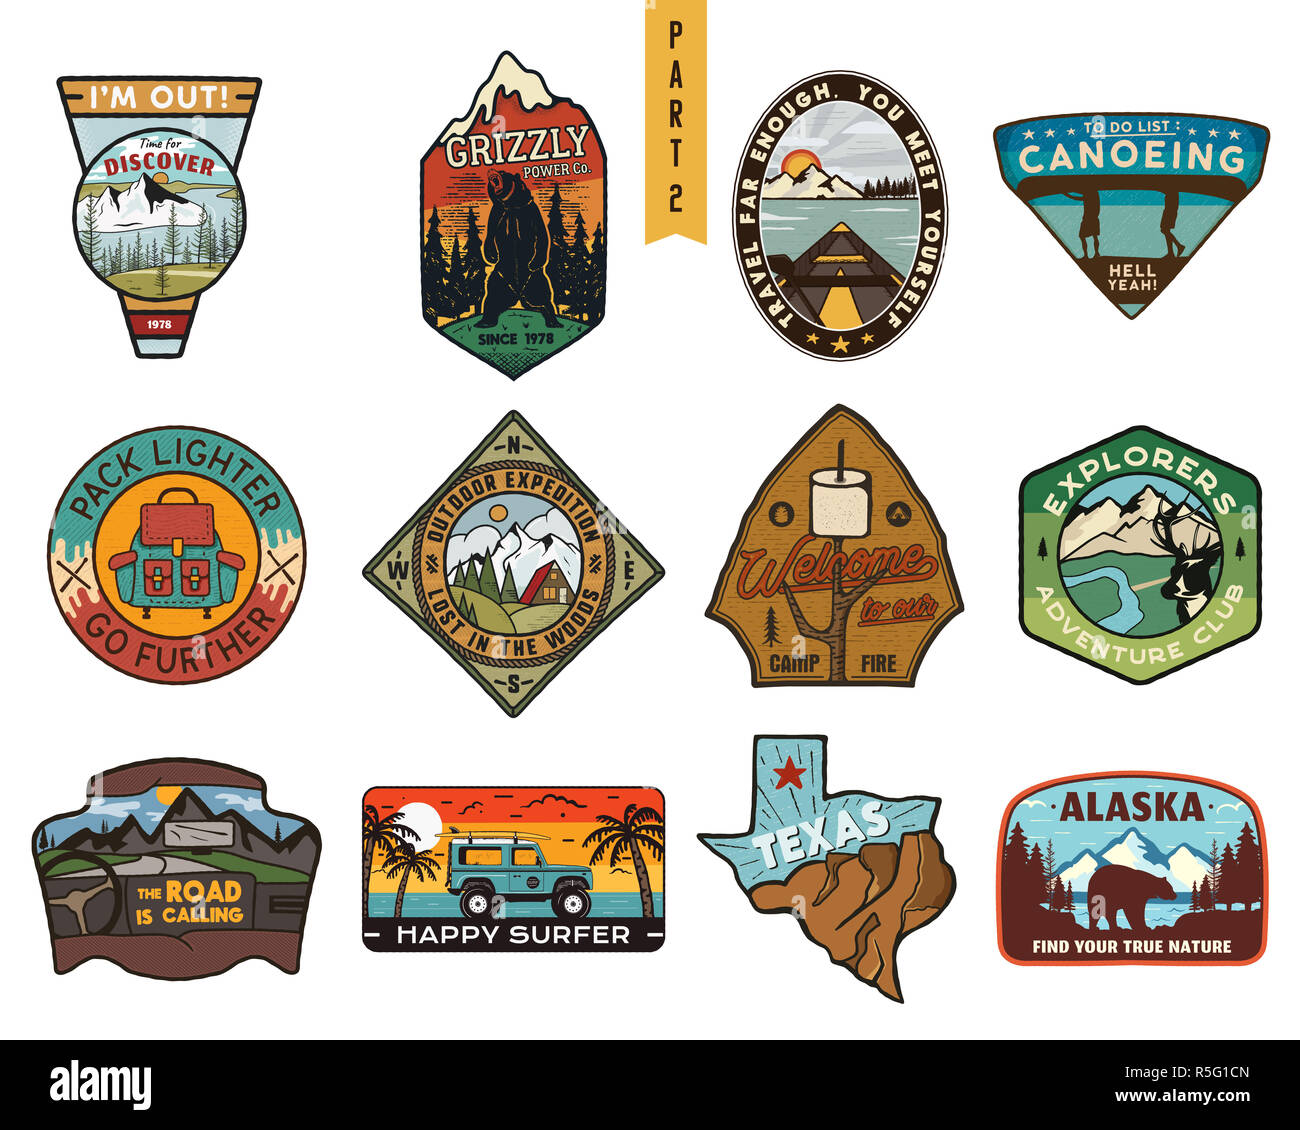 Vintage hand drawn travel badges set. Camping labels concepts. Mountain expedition logo designs. Outdoor hike emblems. Camp logotypes collection. Stock patches isolated on white background. - Stock Image